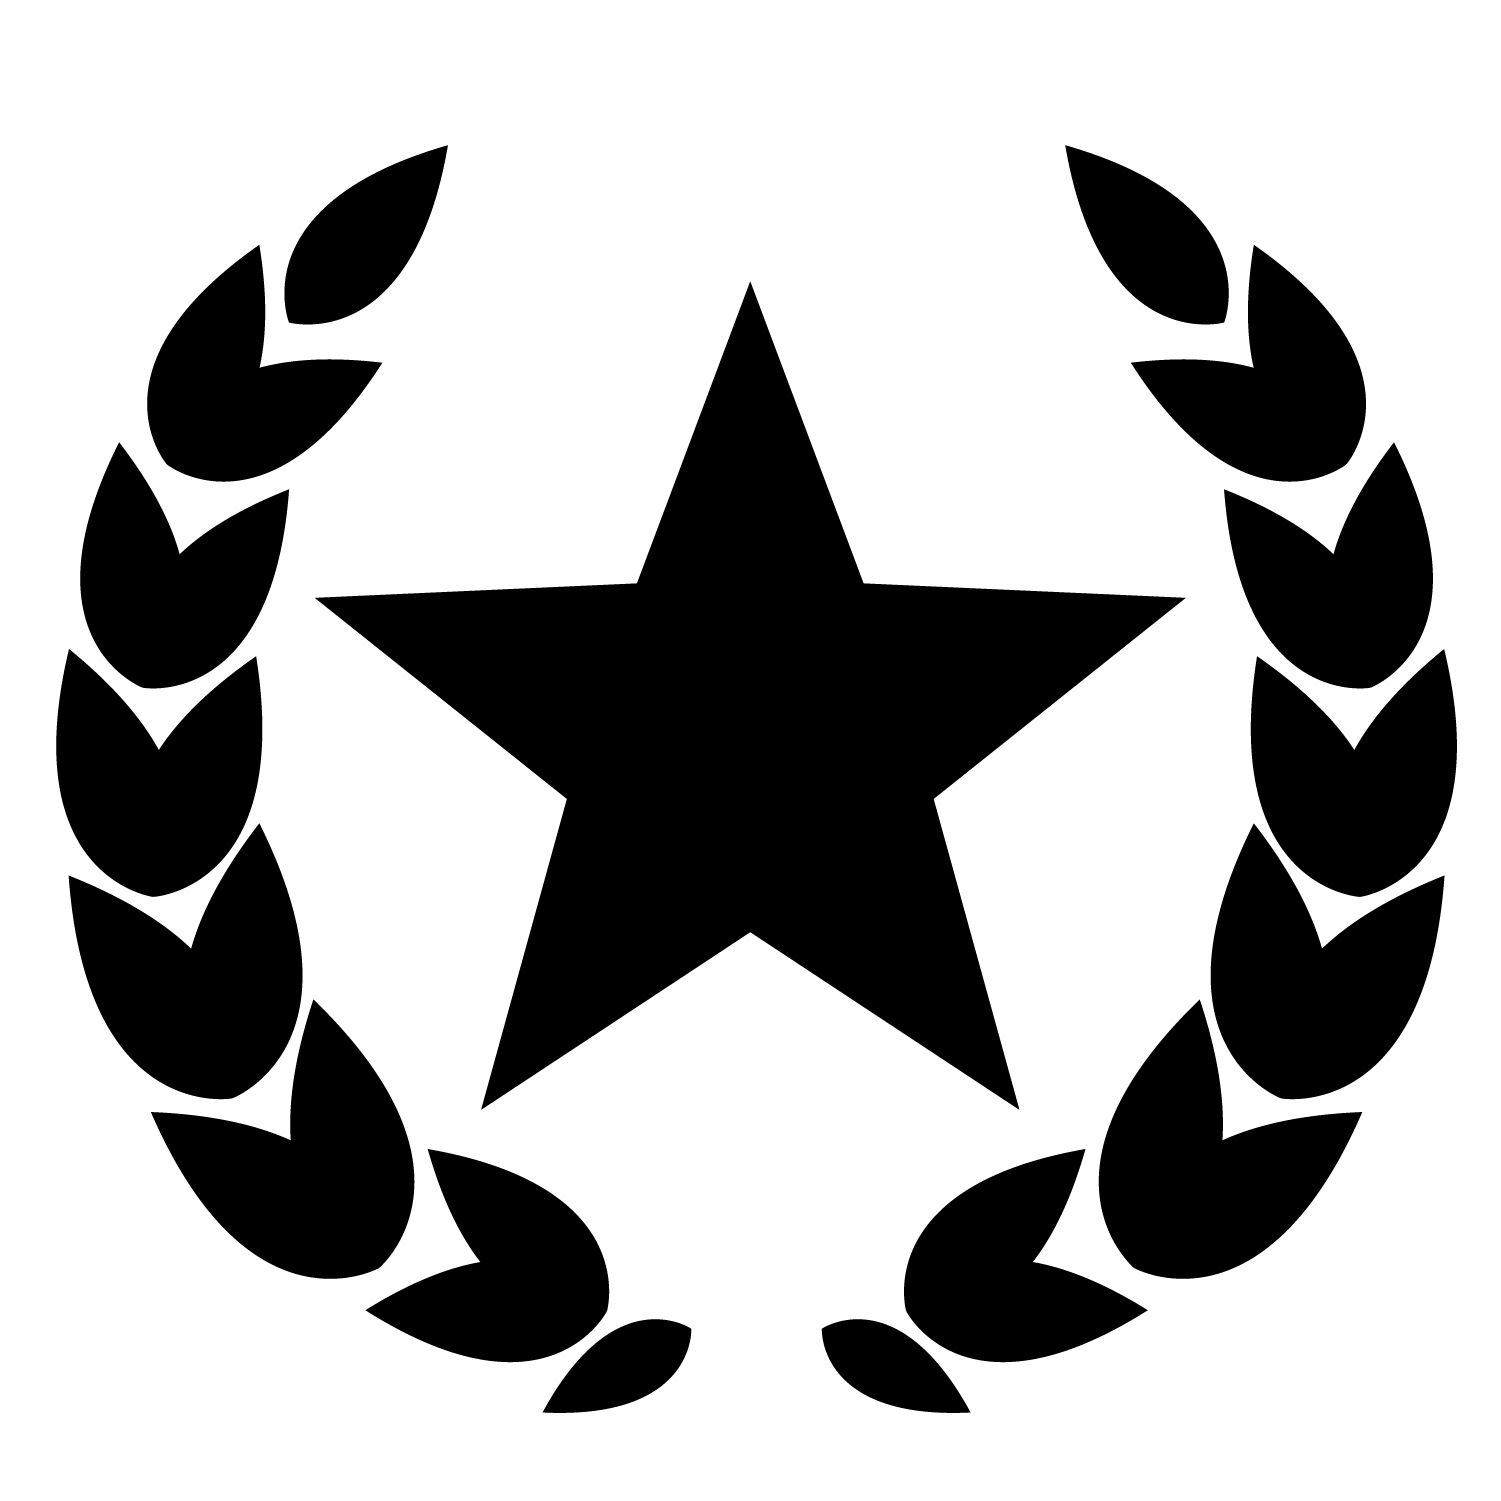 20 - Star and Wreath.png